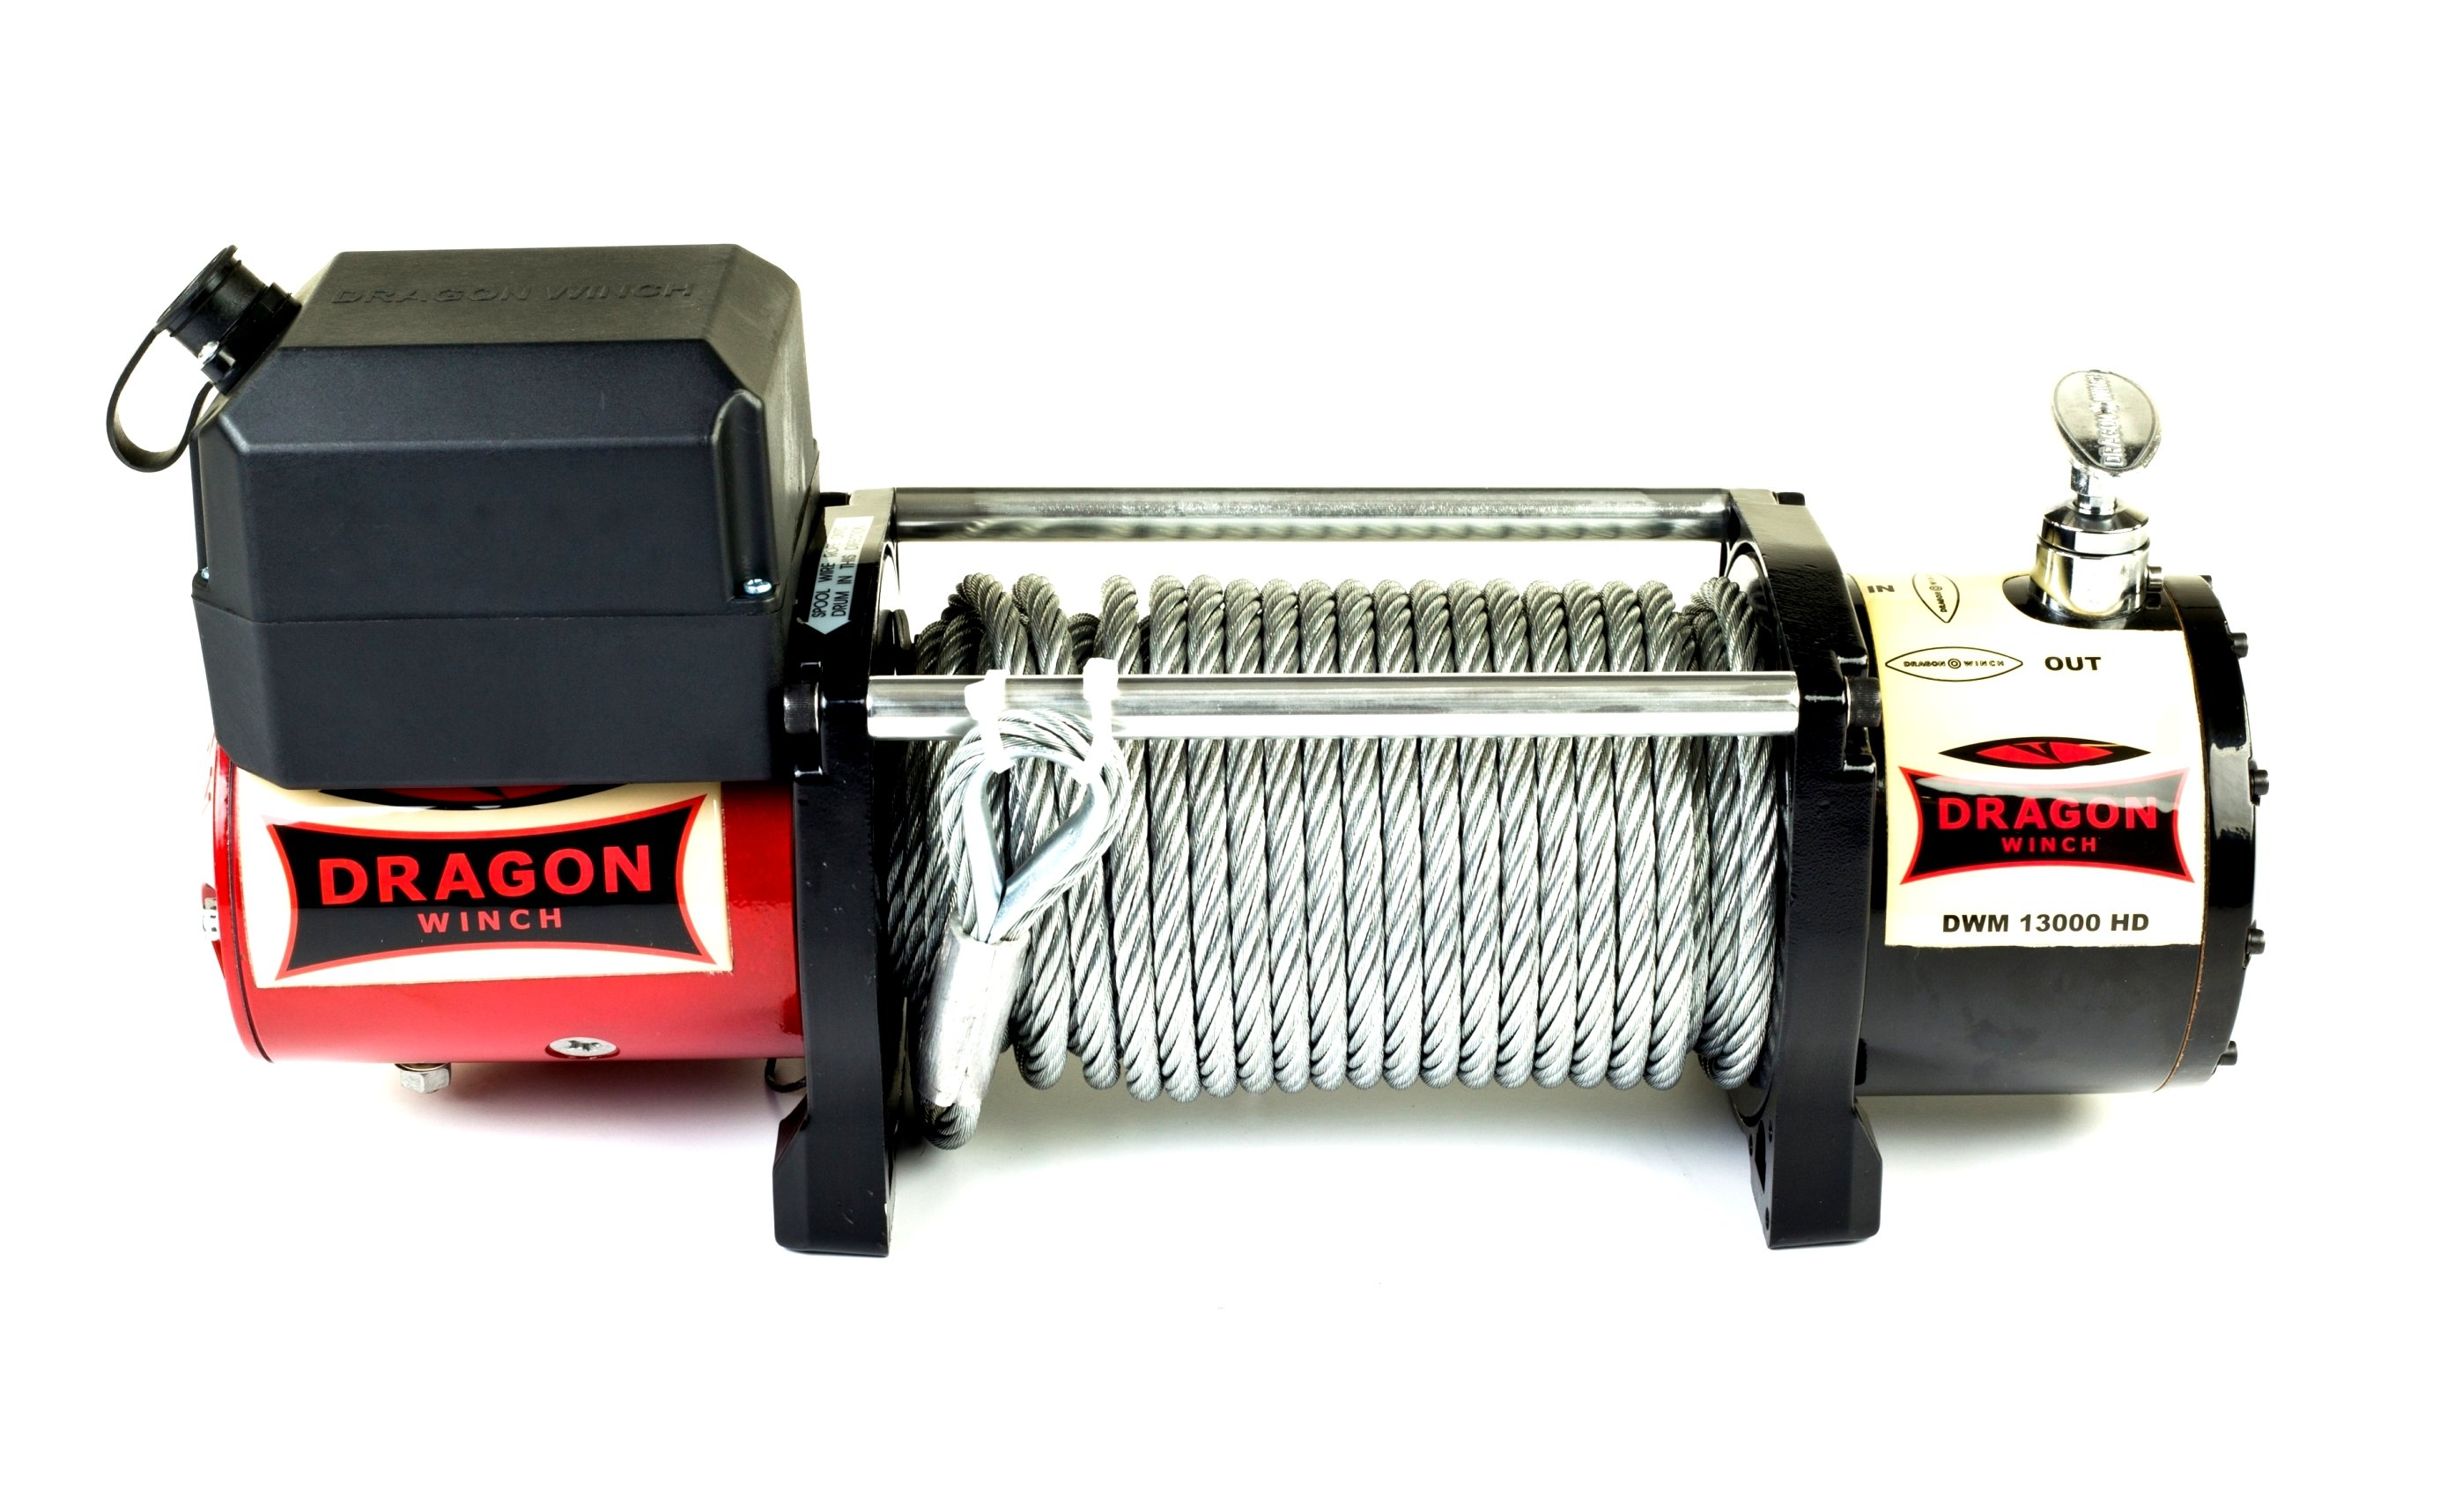 Лебедка Dragon Winch DWM 13000HD